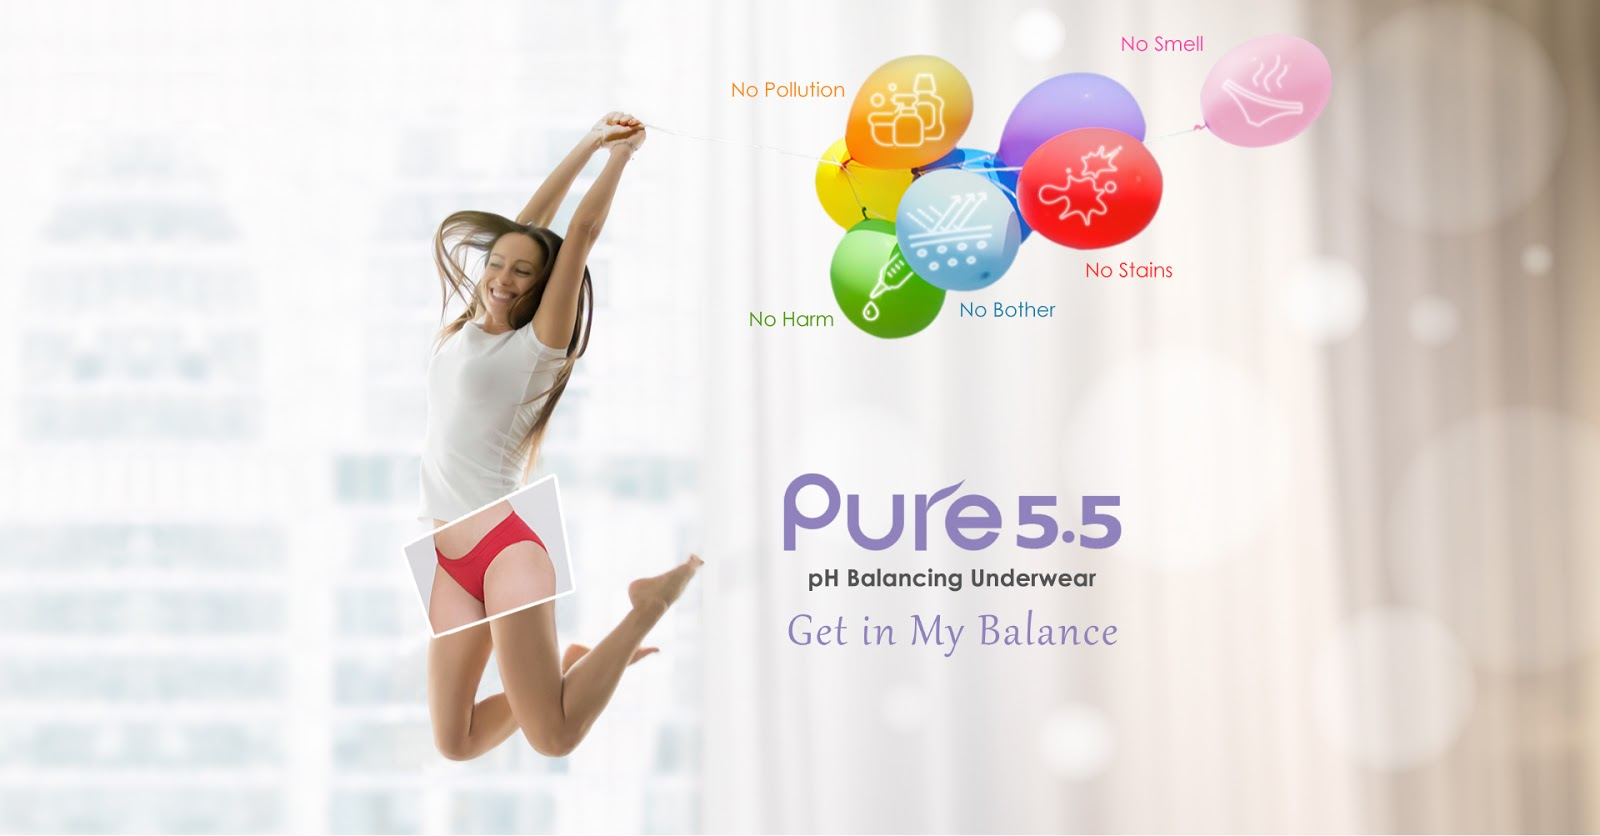 aPure Pure55 5 Big NO's Underwear